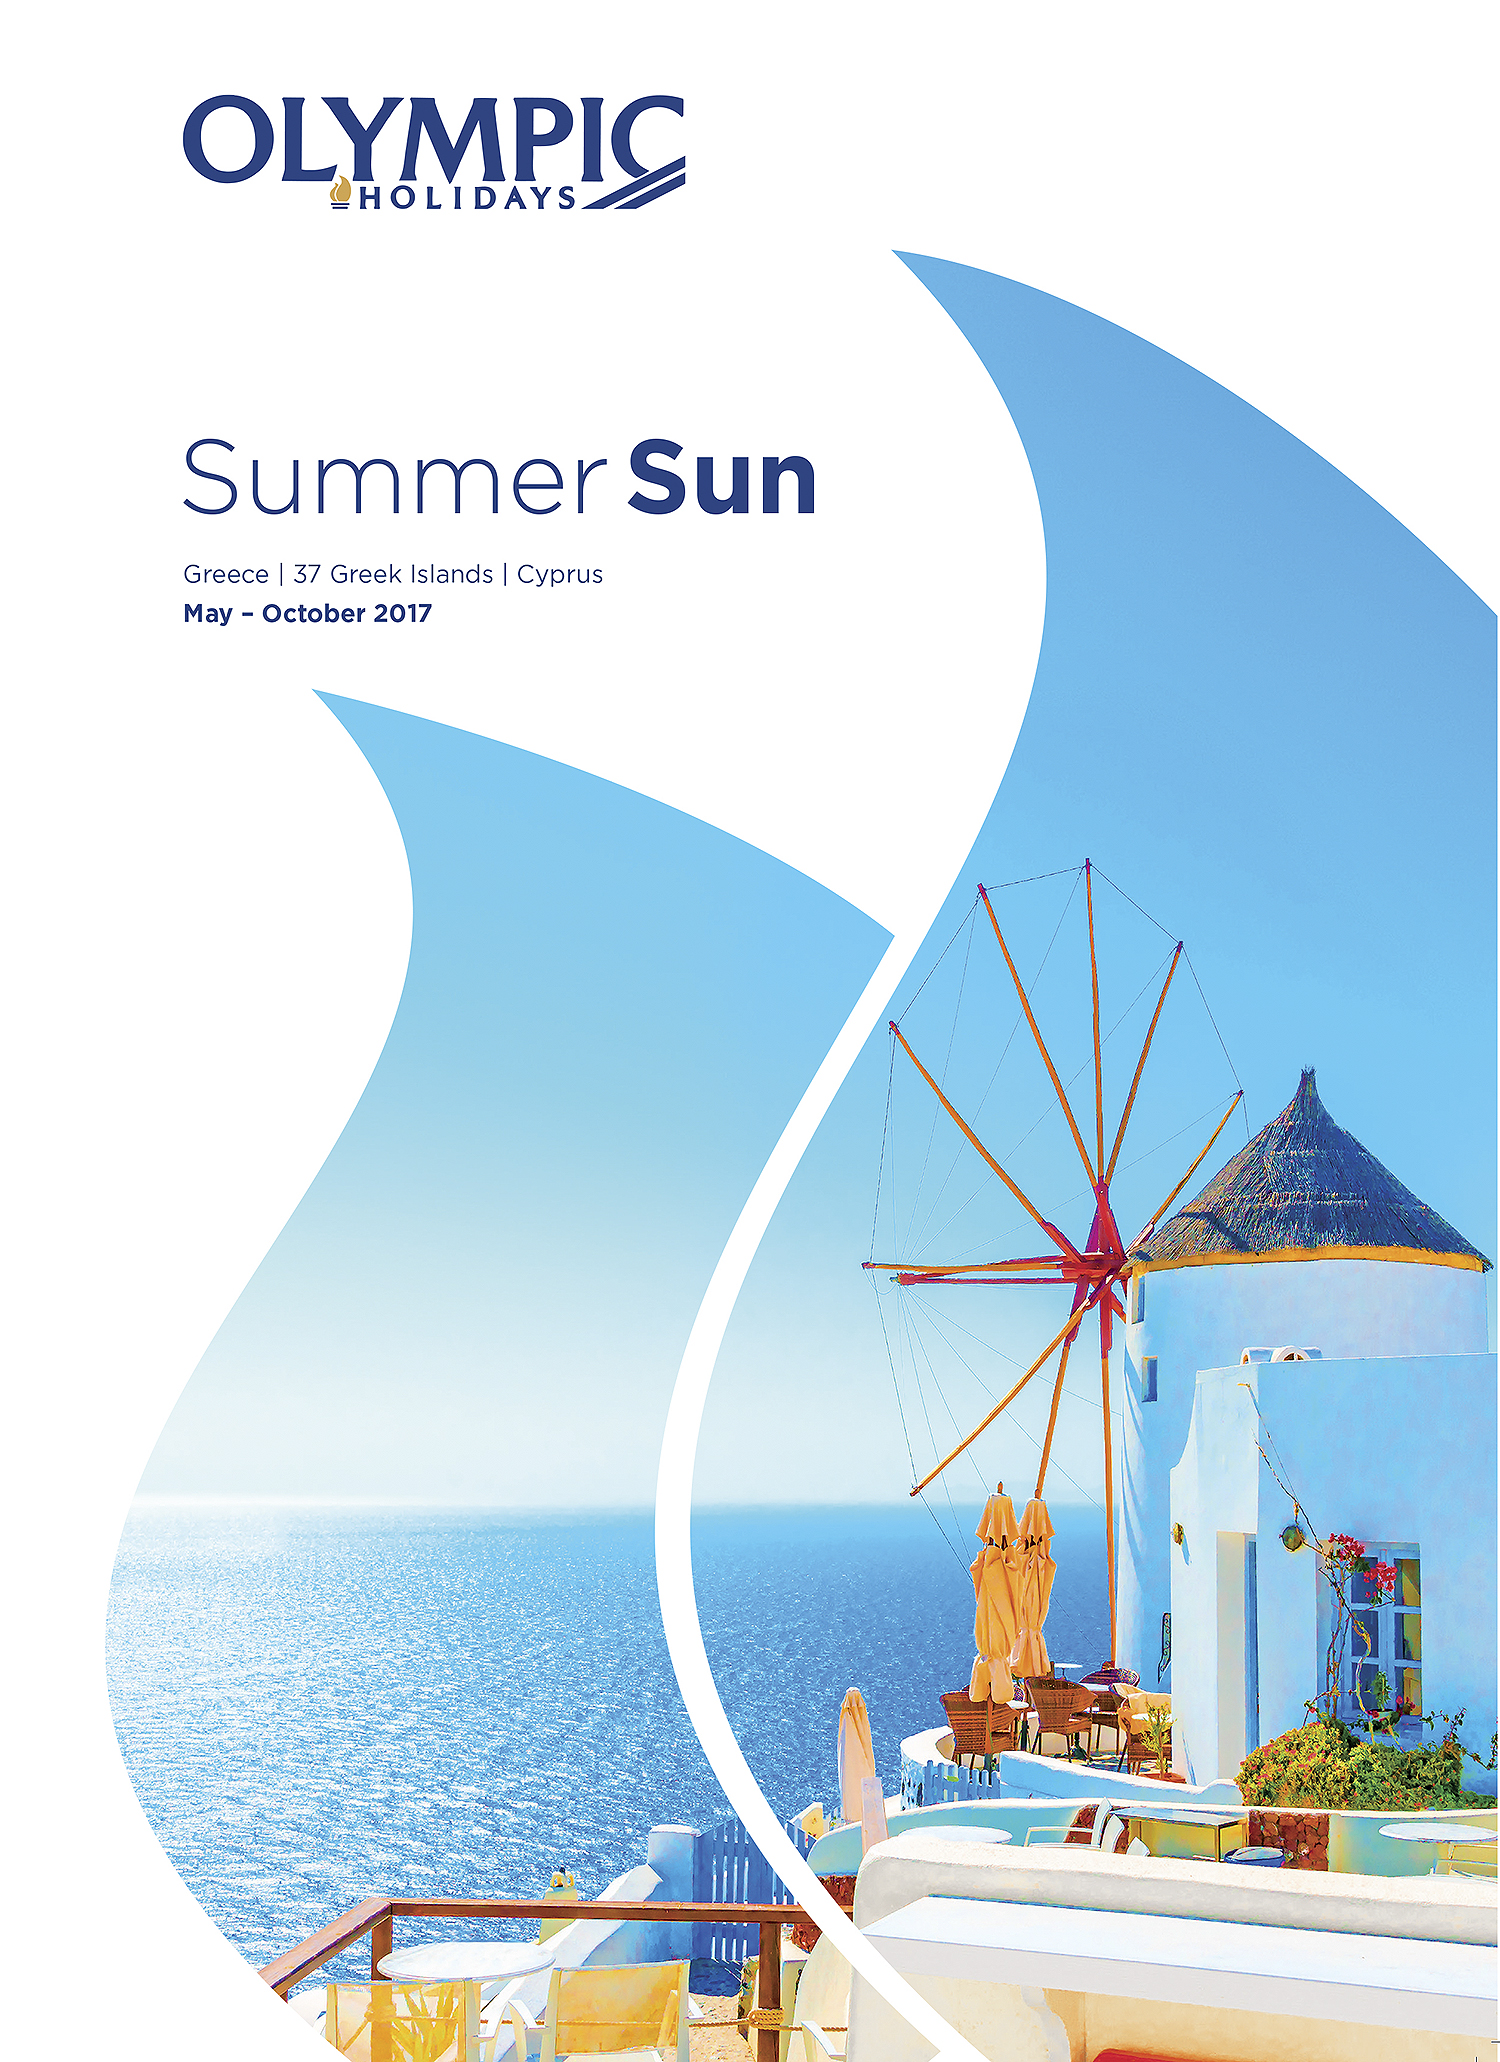 Olympic holidays summer sun brochure 2017